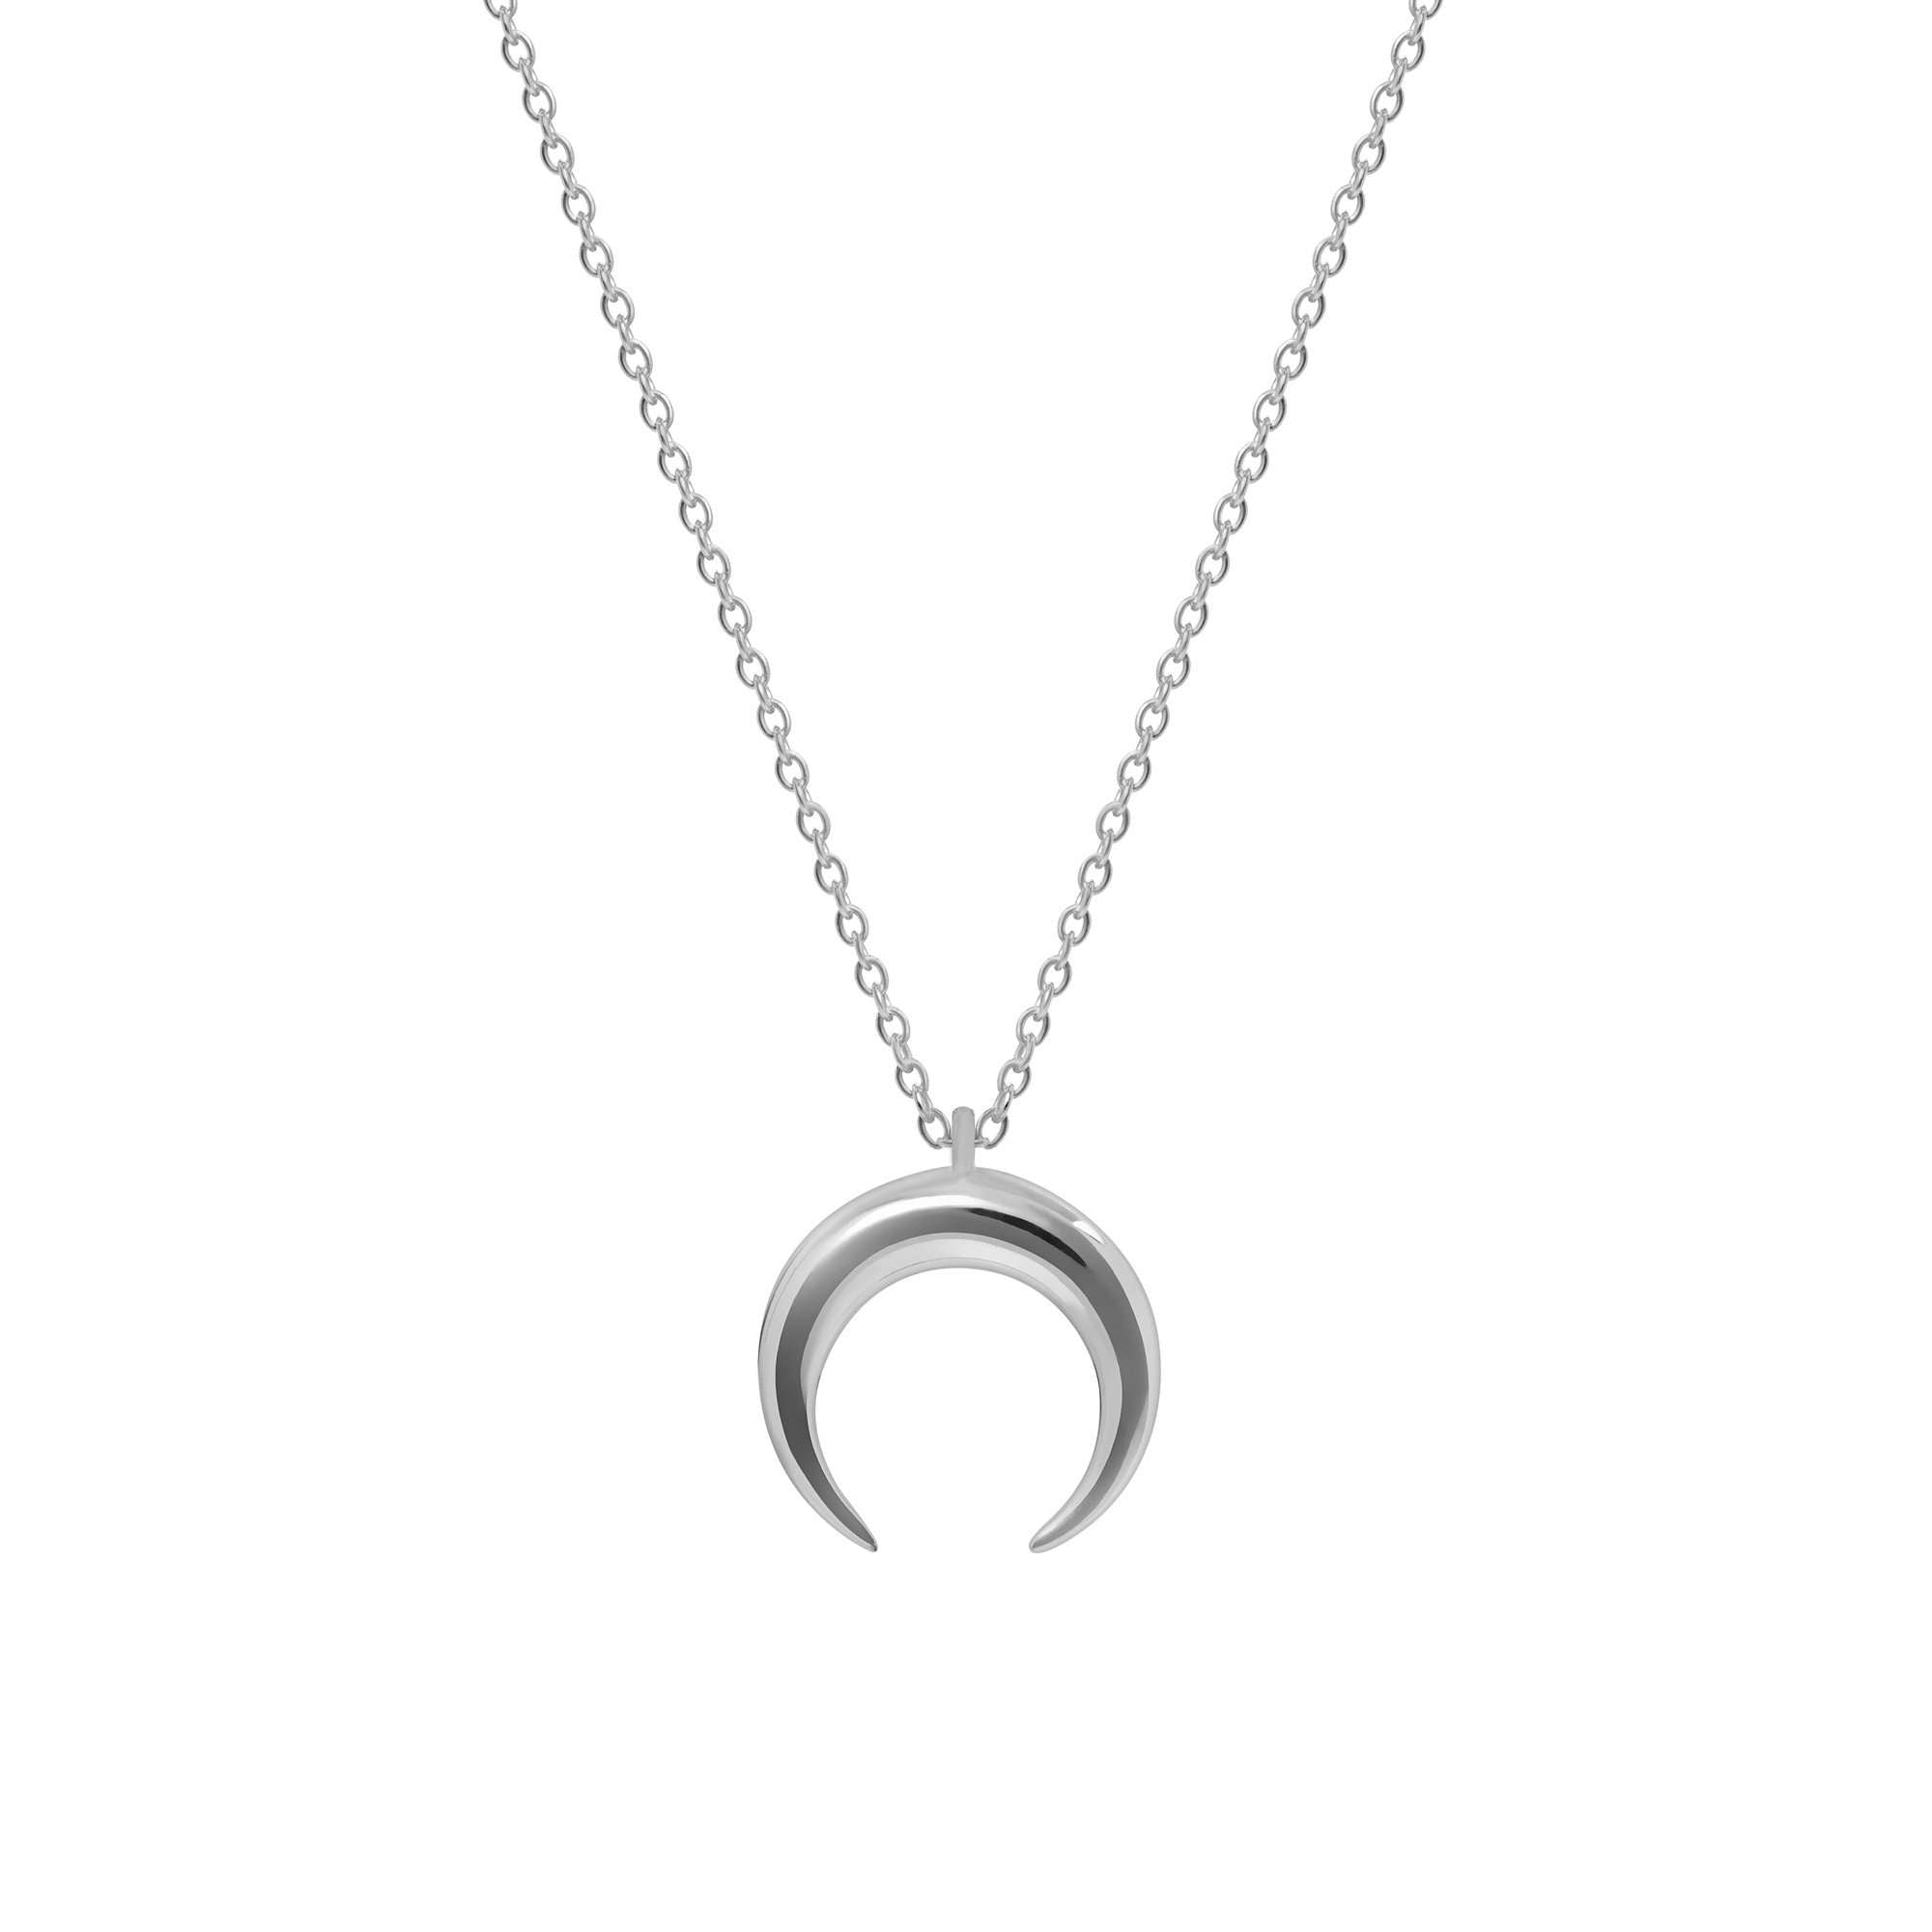 s silver claire necklace half moon pendant us